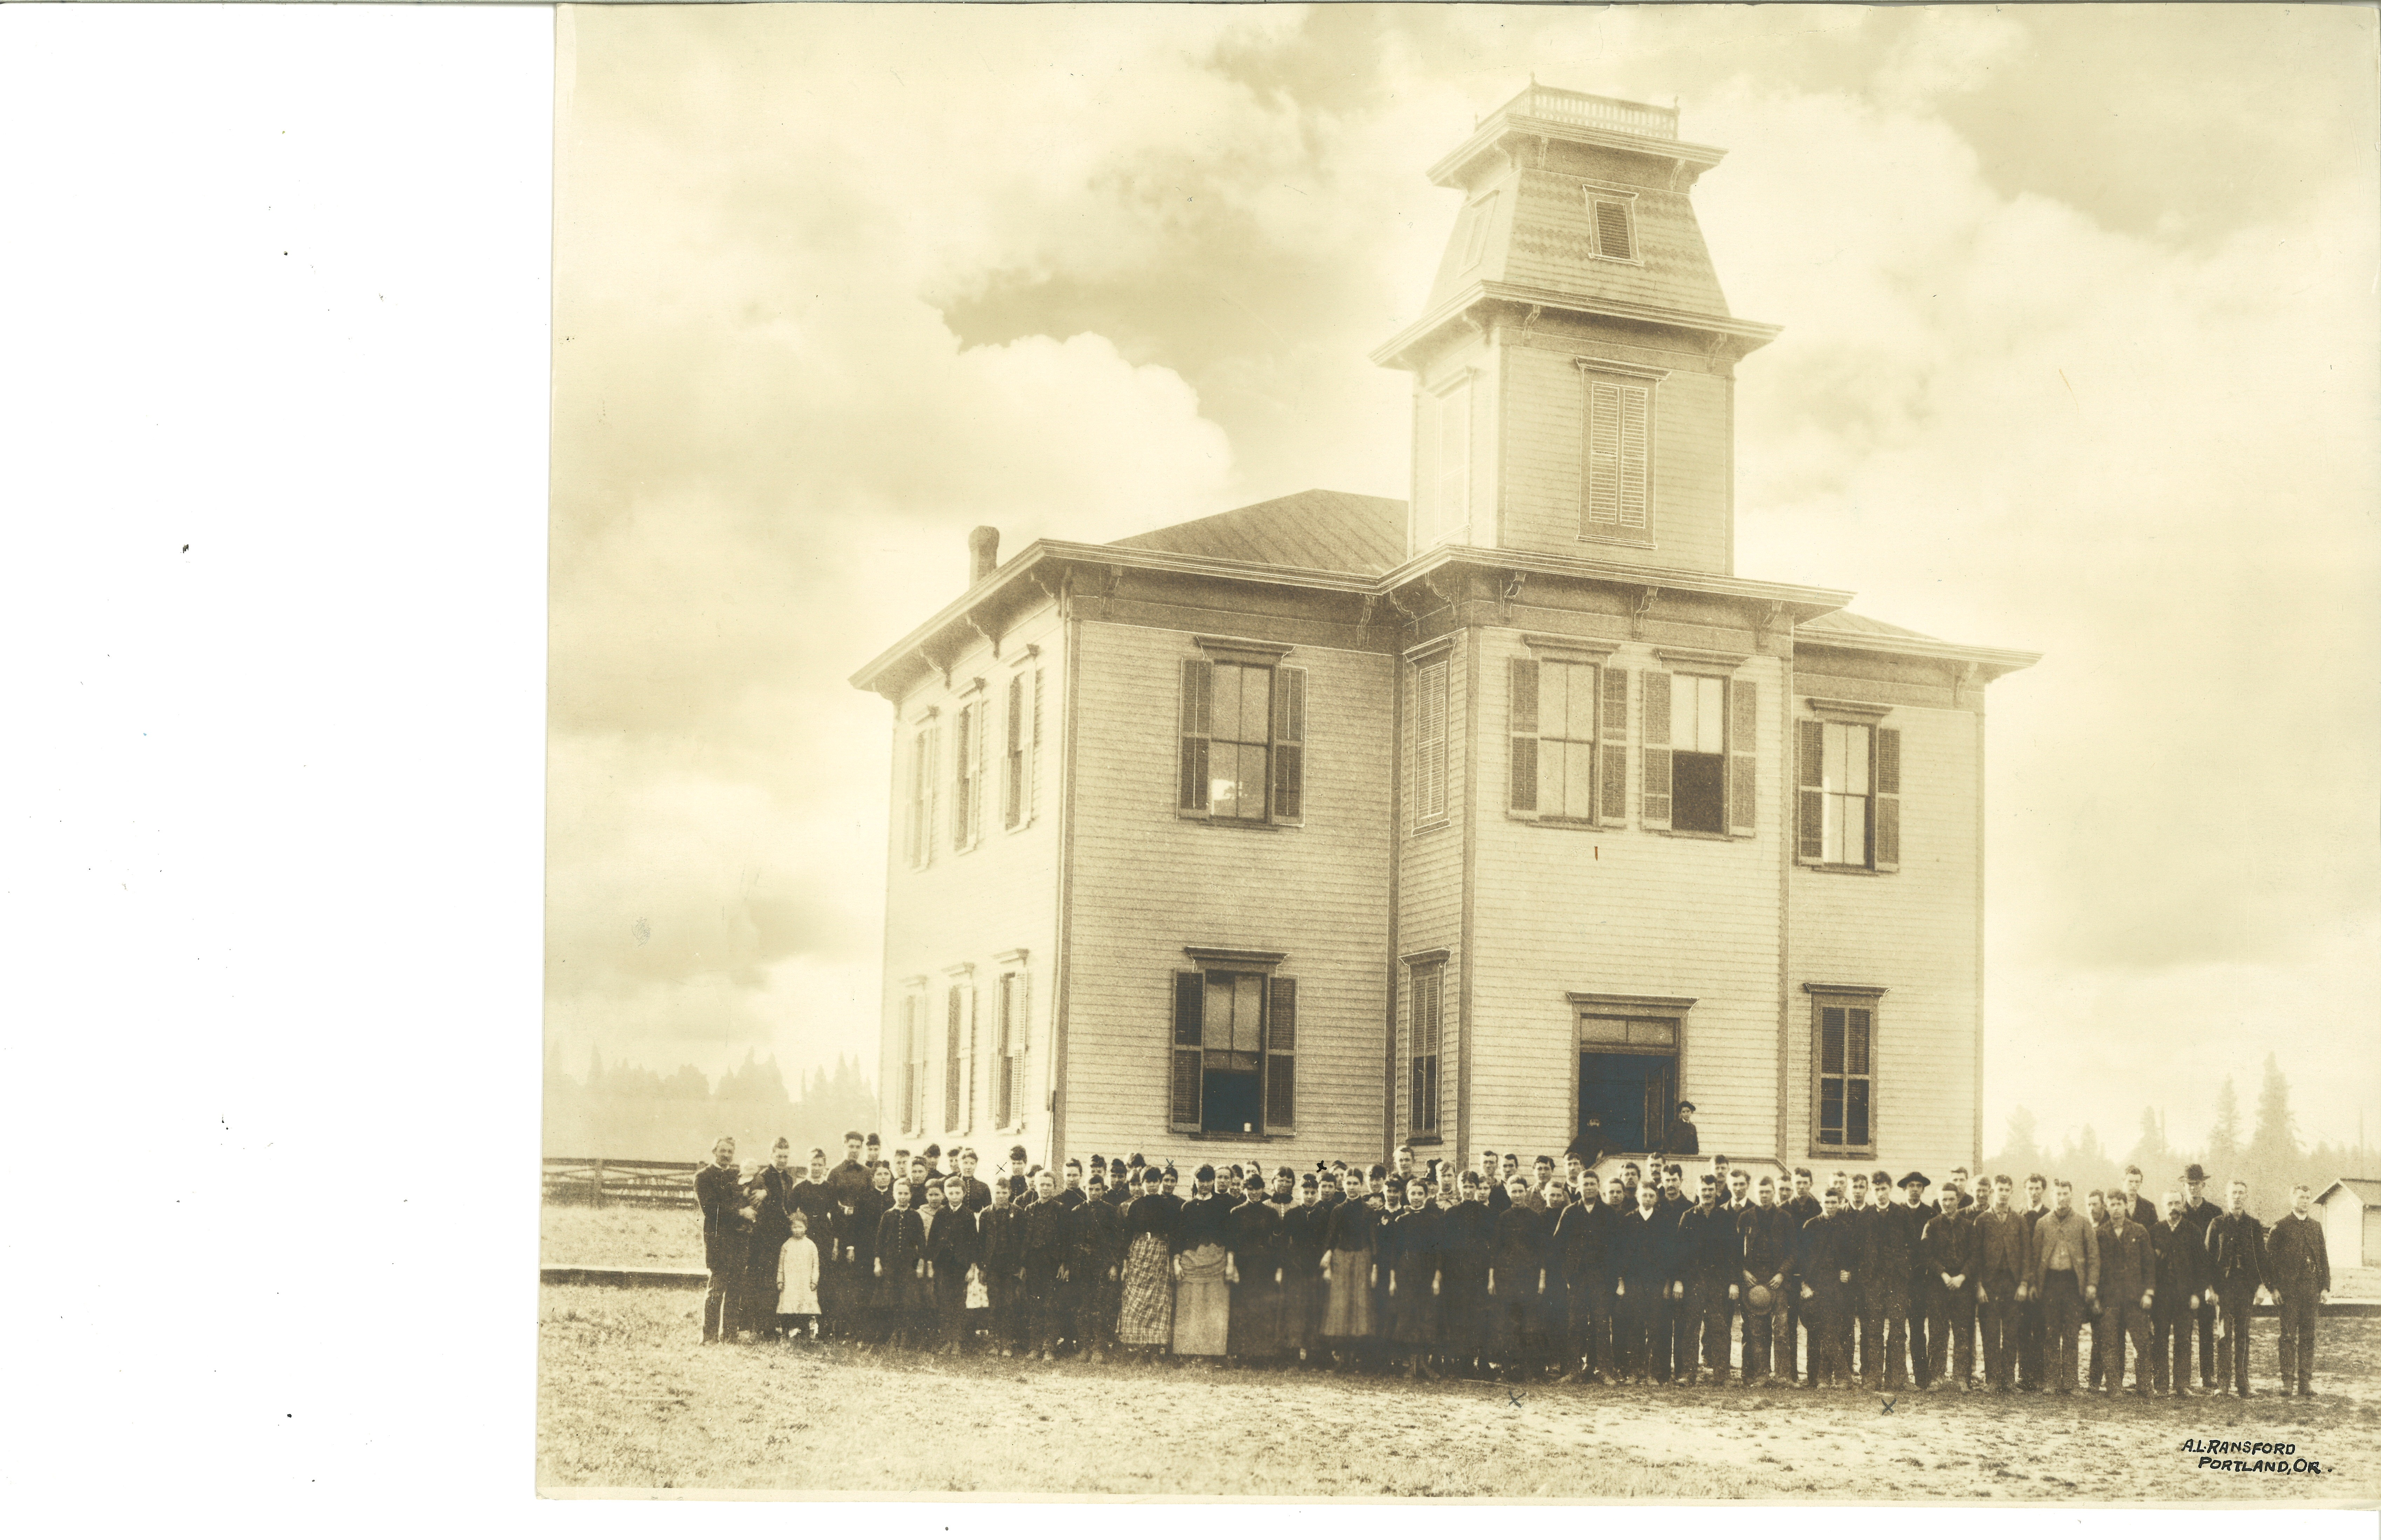 The Friends Pacific Academy, established in 1885, was originally at the site of the Newberg Friends Church, and moved to the current site of the George Fox University campus in 1892. It was damaged in a fire in 1947 but stood on the site of the Hoover Academic building until 1955.